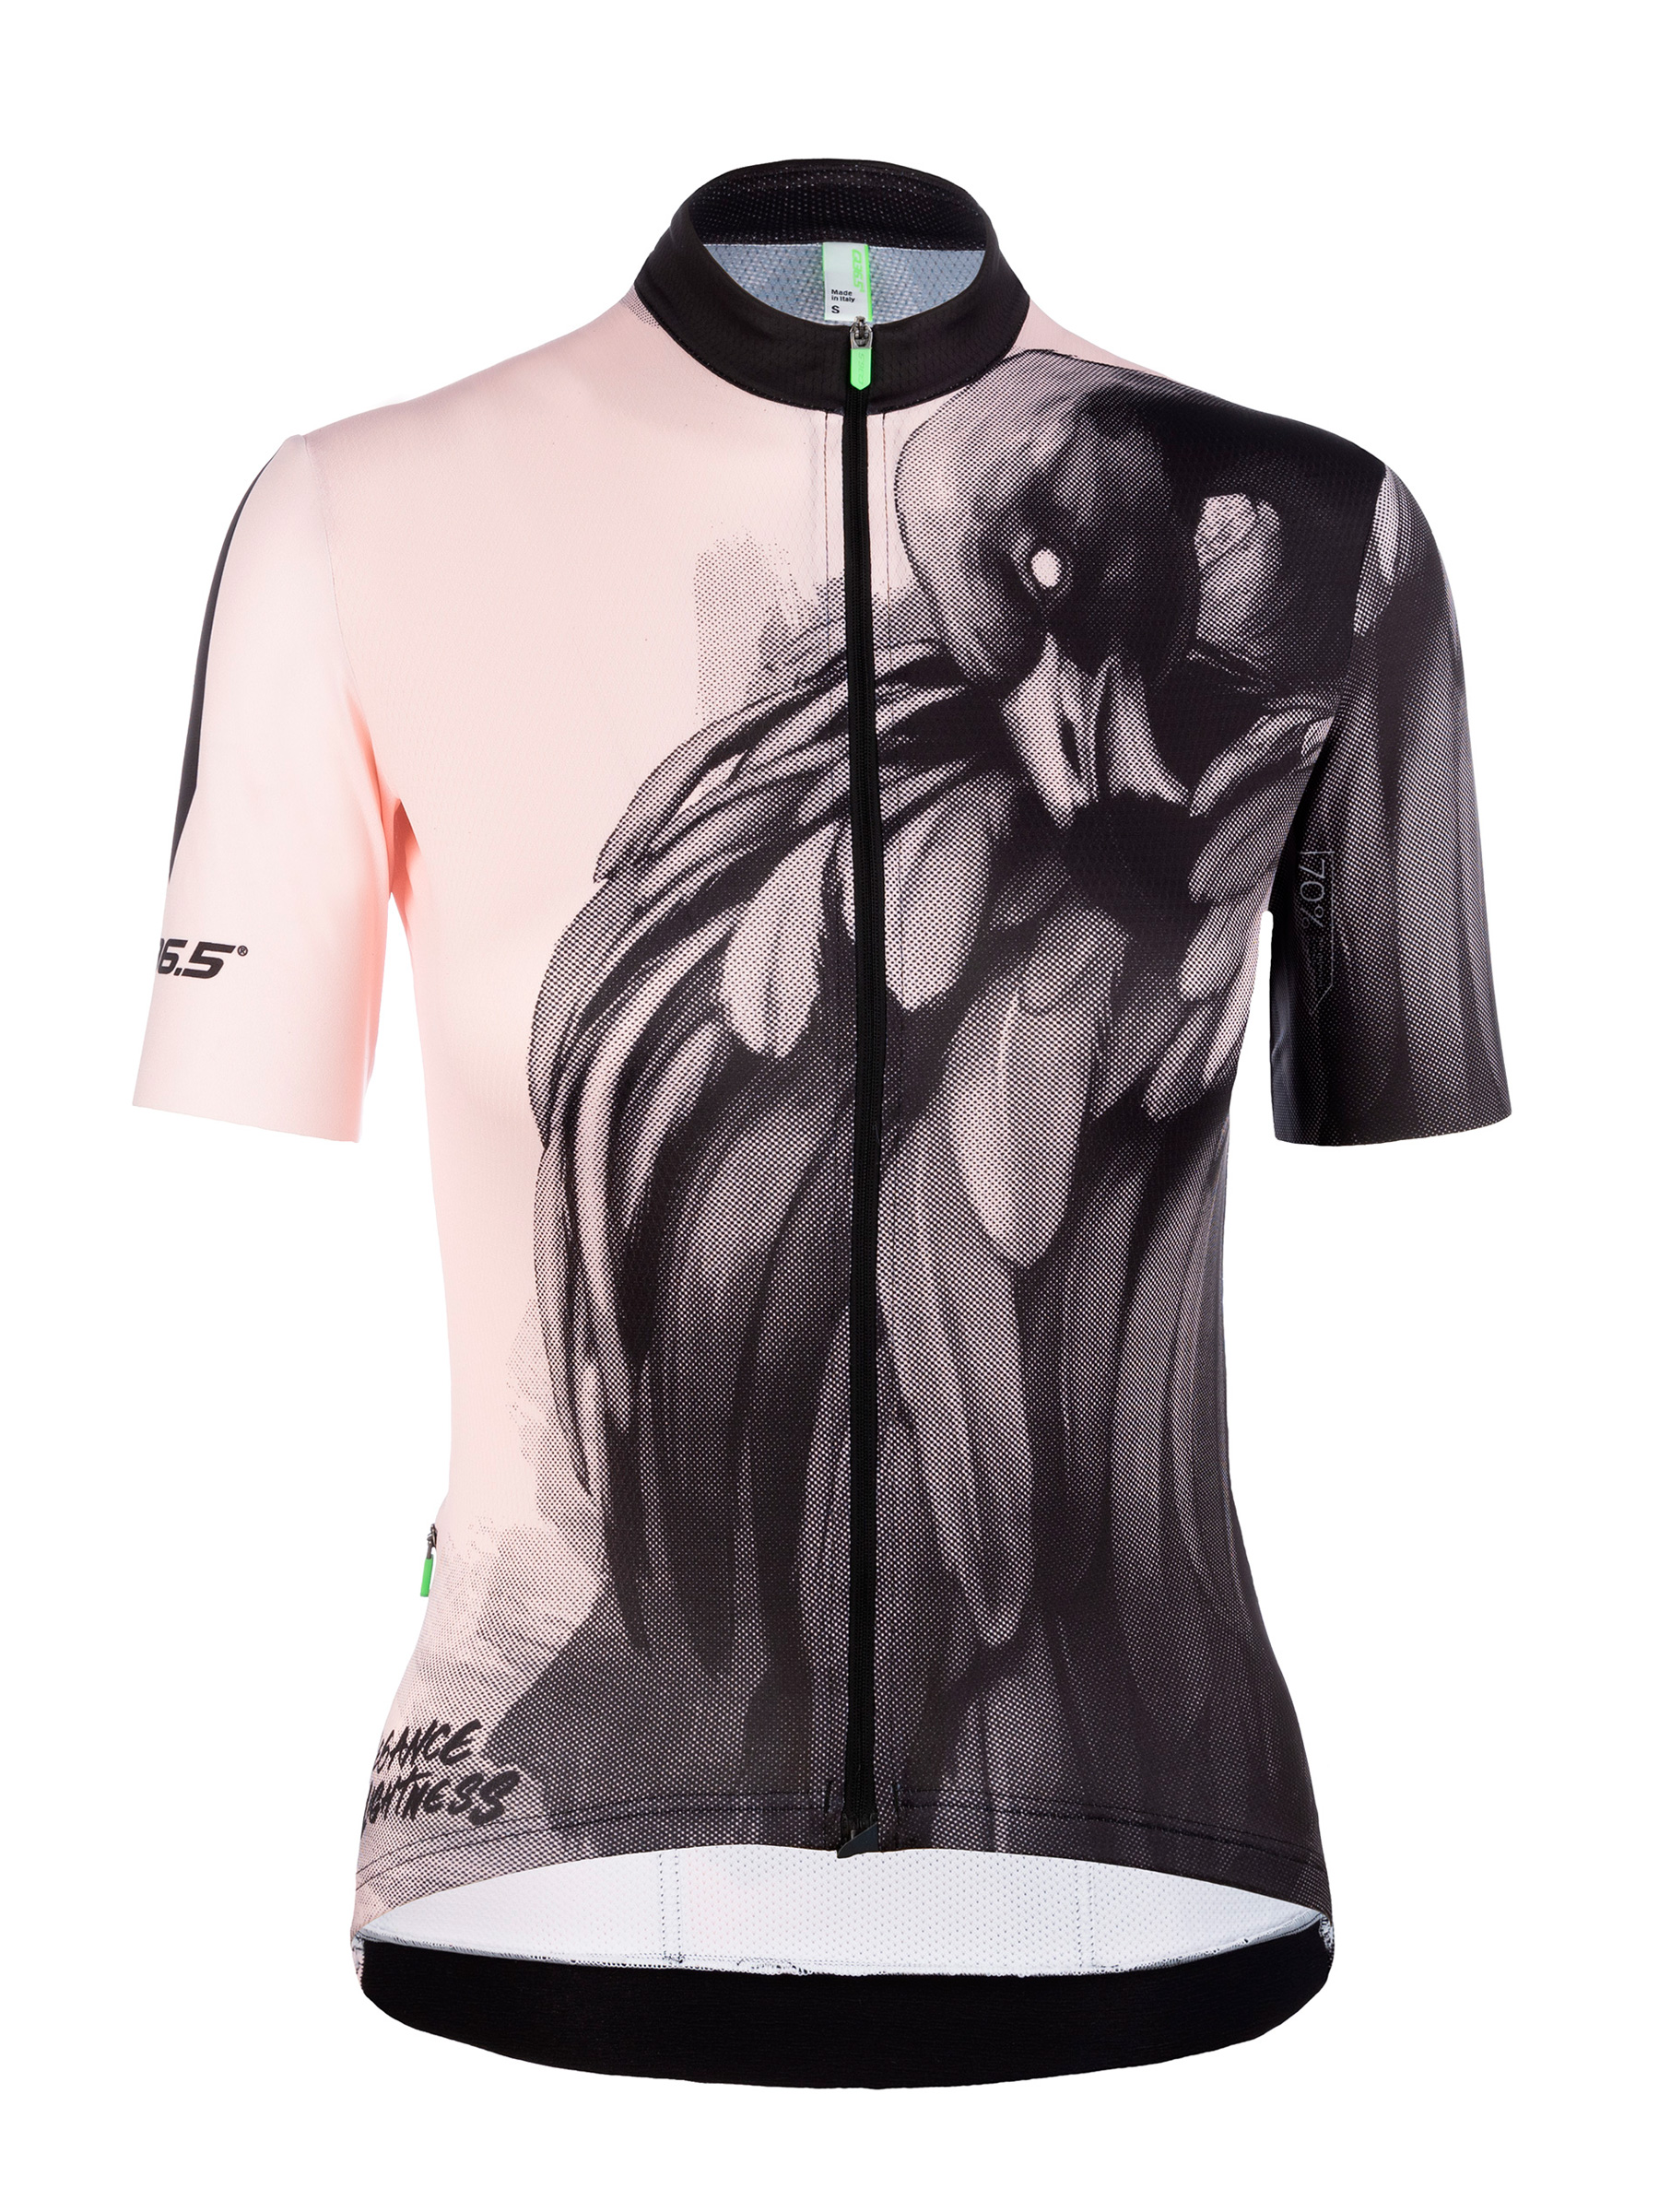 Womens cycling jersey short sleeve G1 Lady Flamingo Q36.5